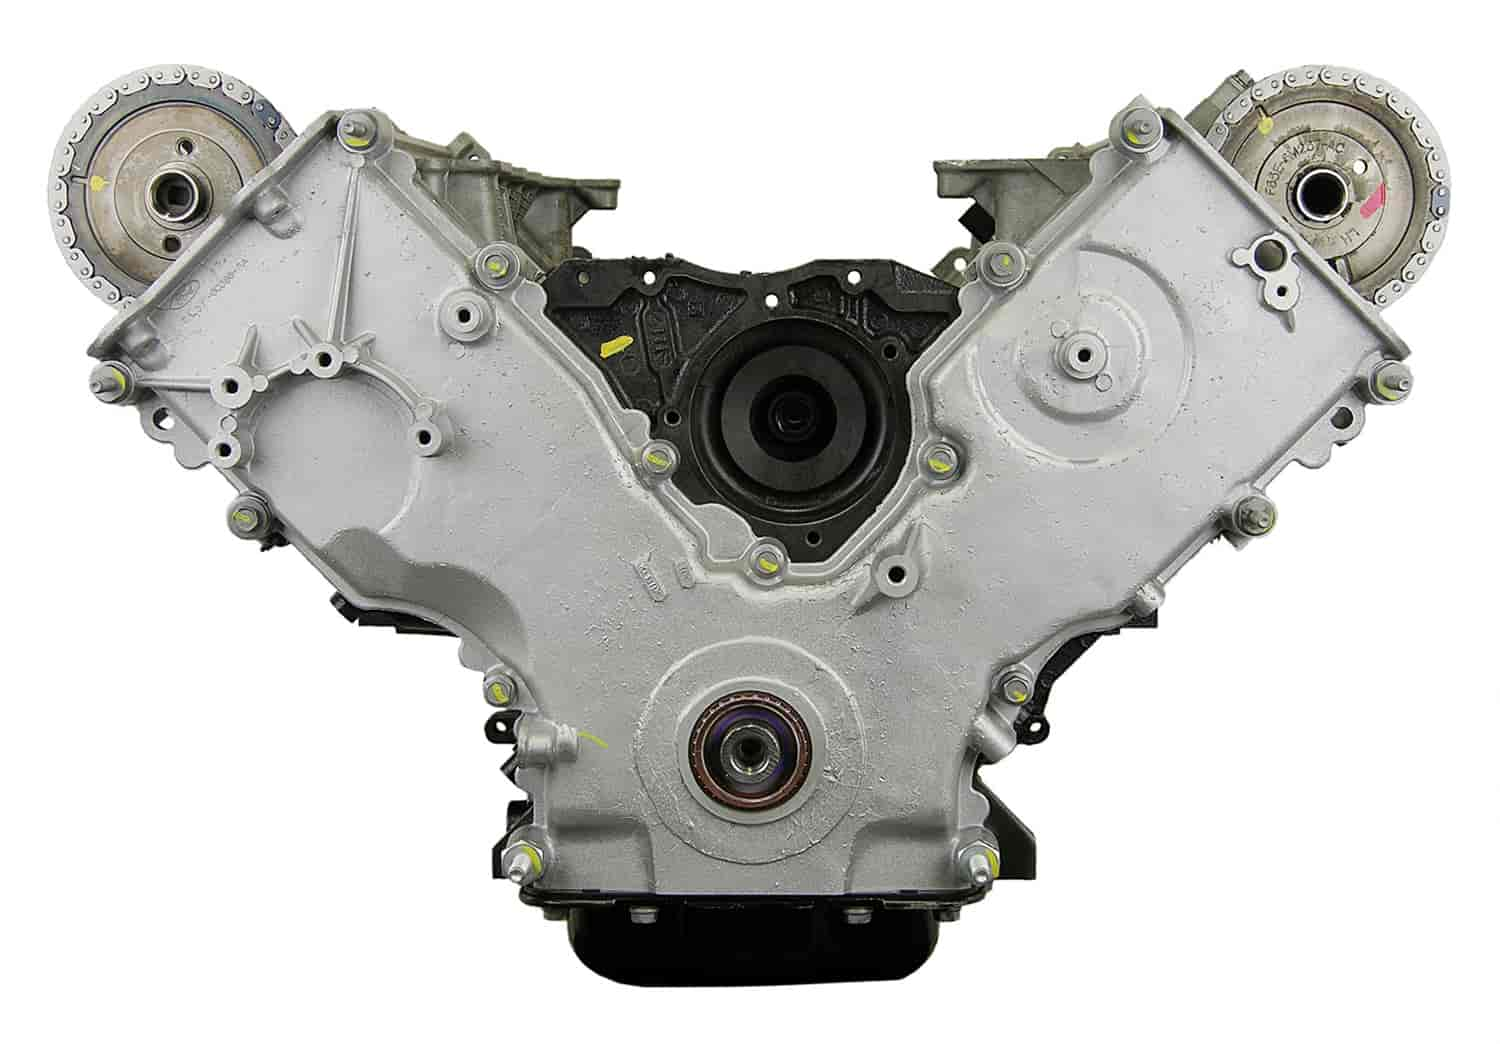 Atk engines dfcw remanufactured crate engine for 2002 for Crate motors ford f150